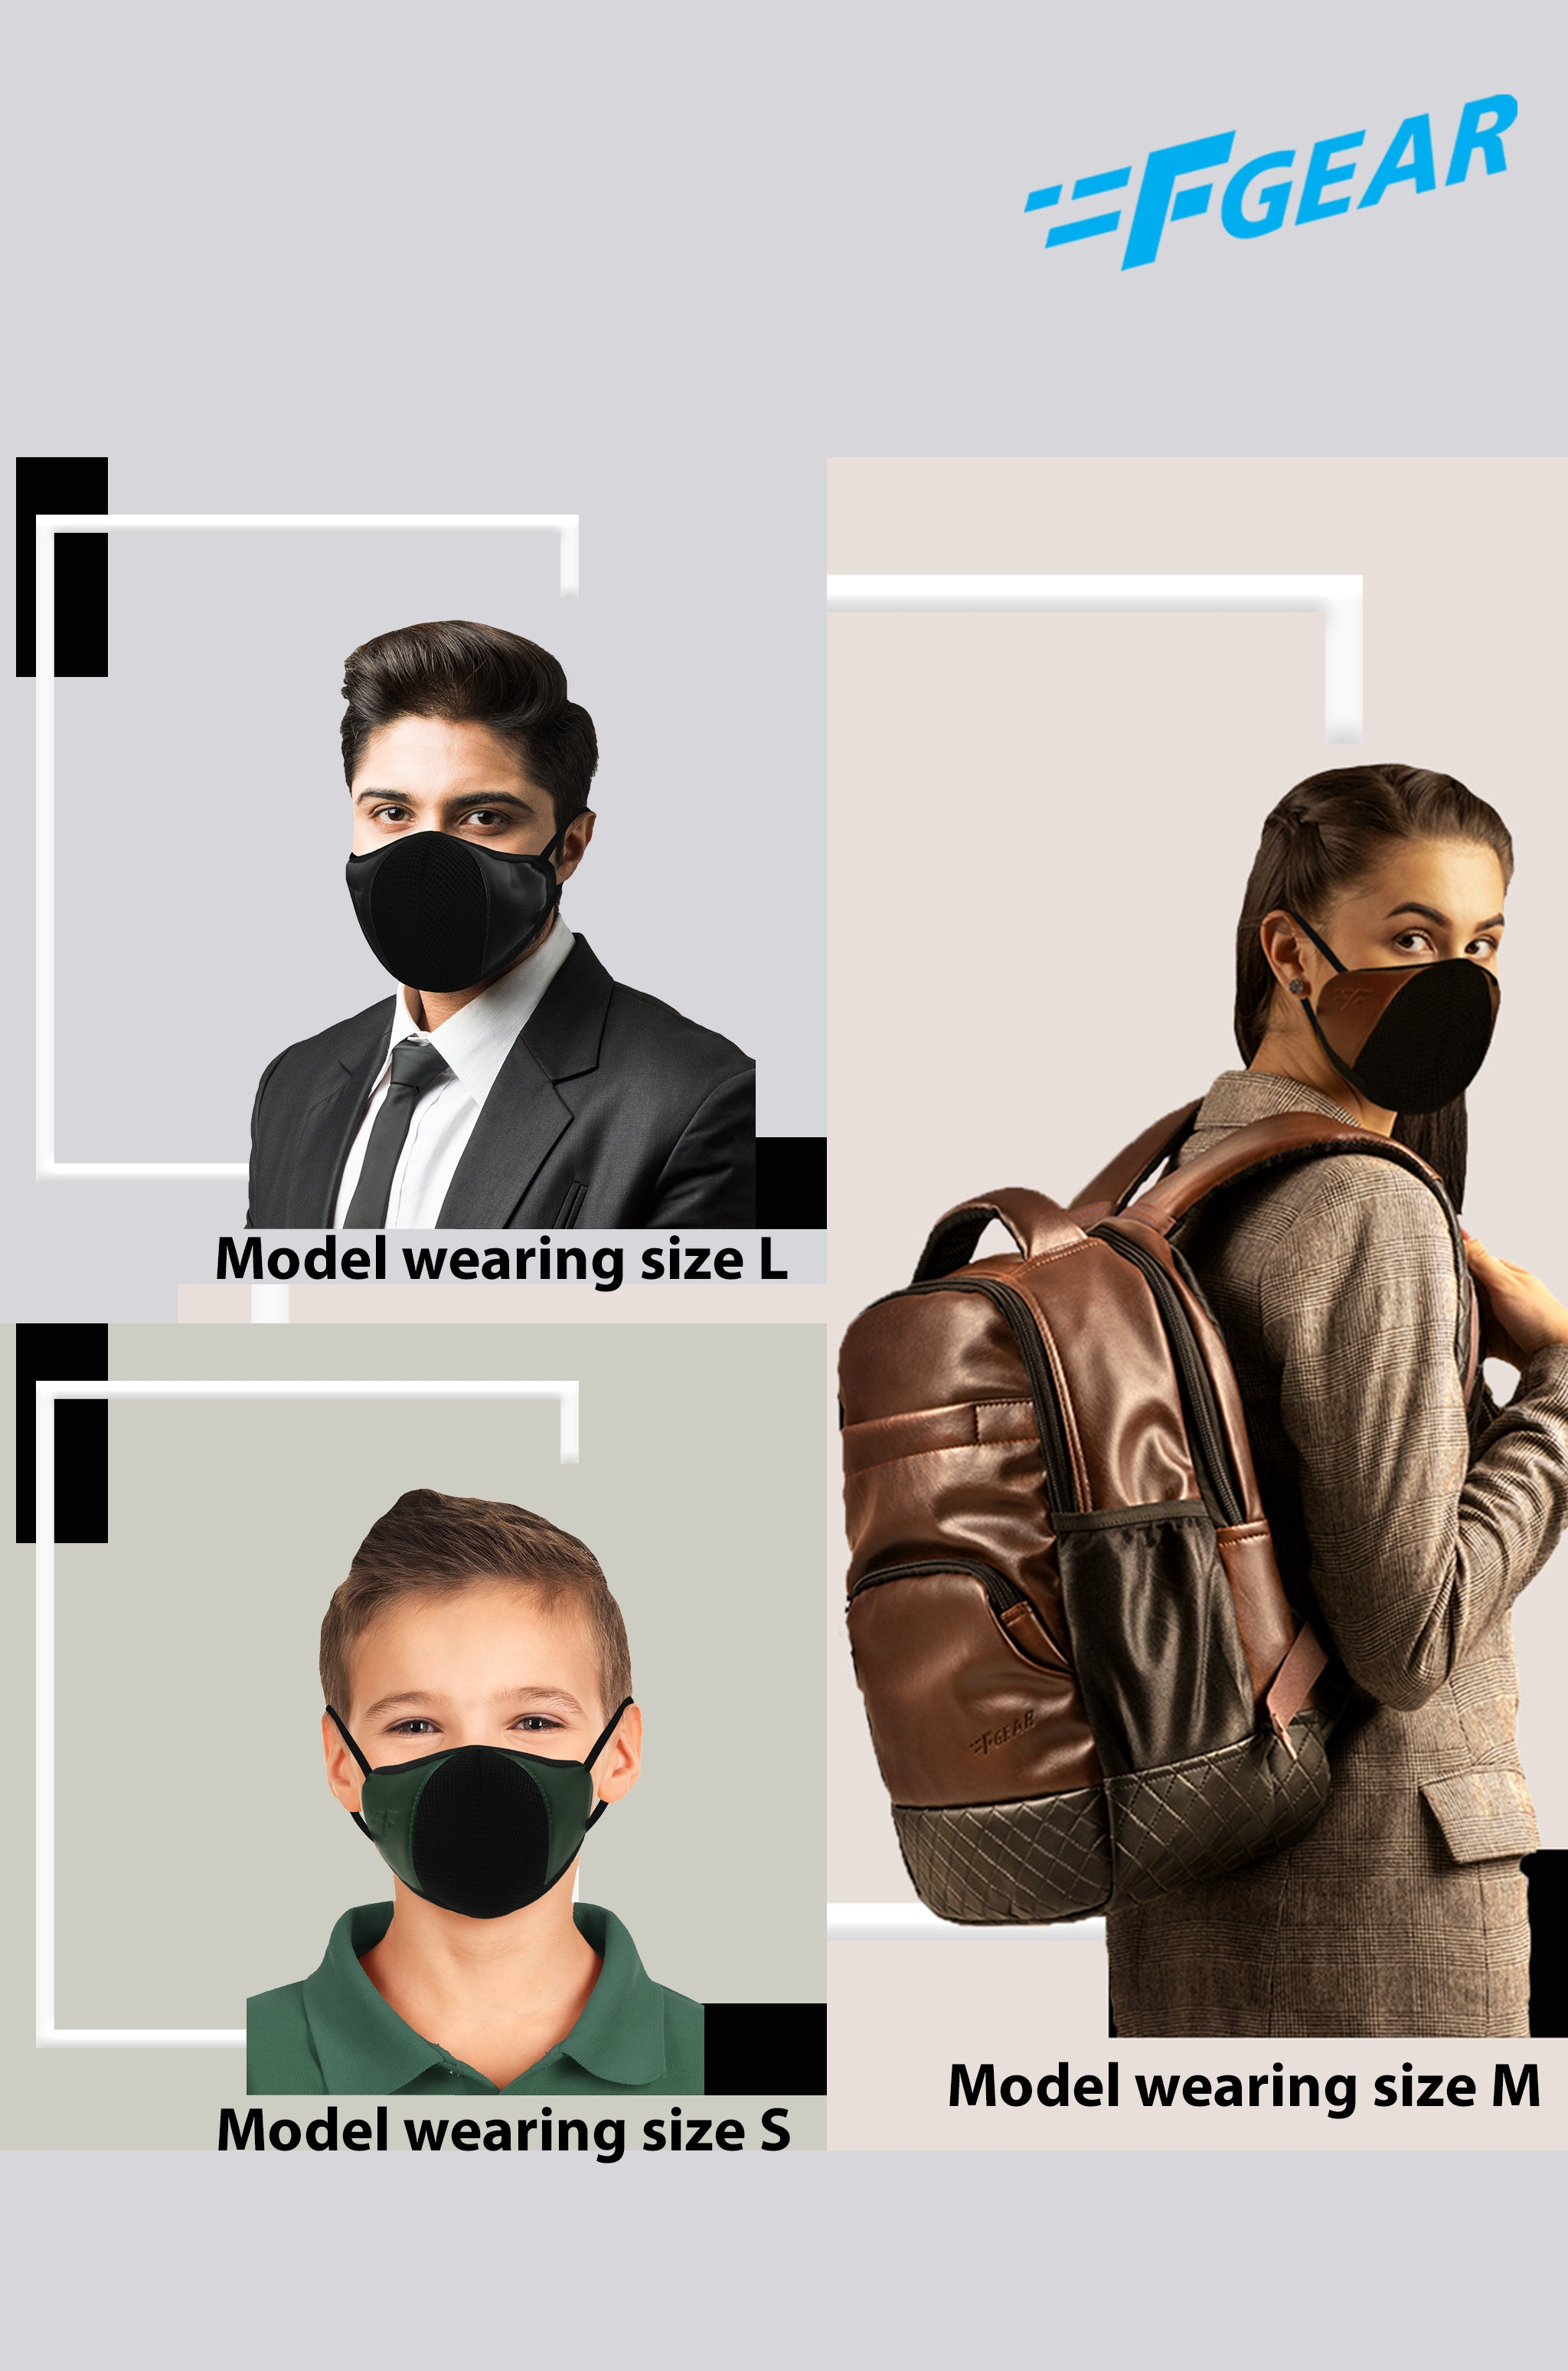 F Gear Luxur F95 Leatherette Mask Black Safeguard 7 layer ISO CE SITRA lab certified >95% Bacteria Filtration